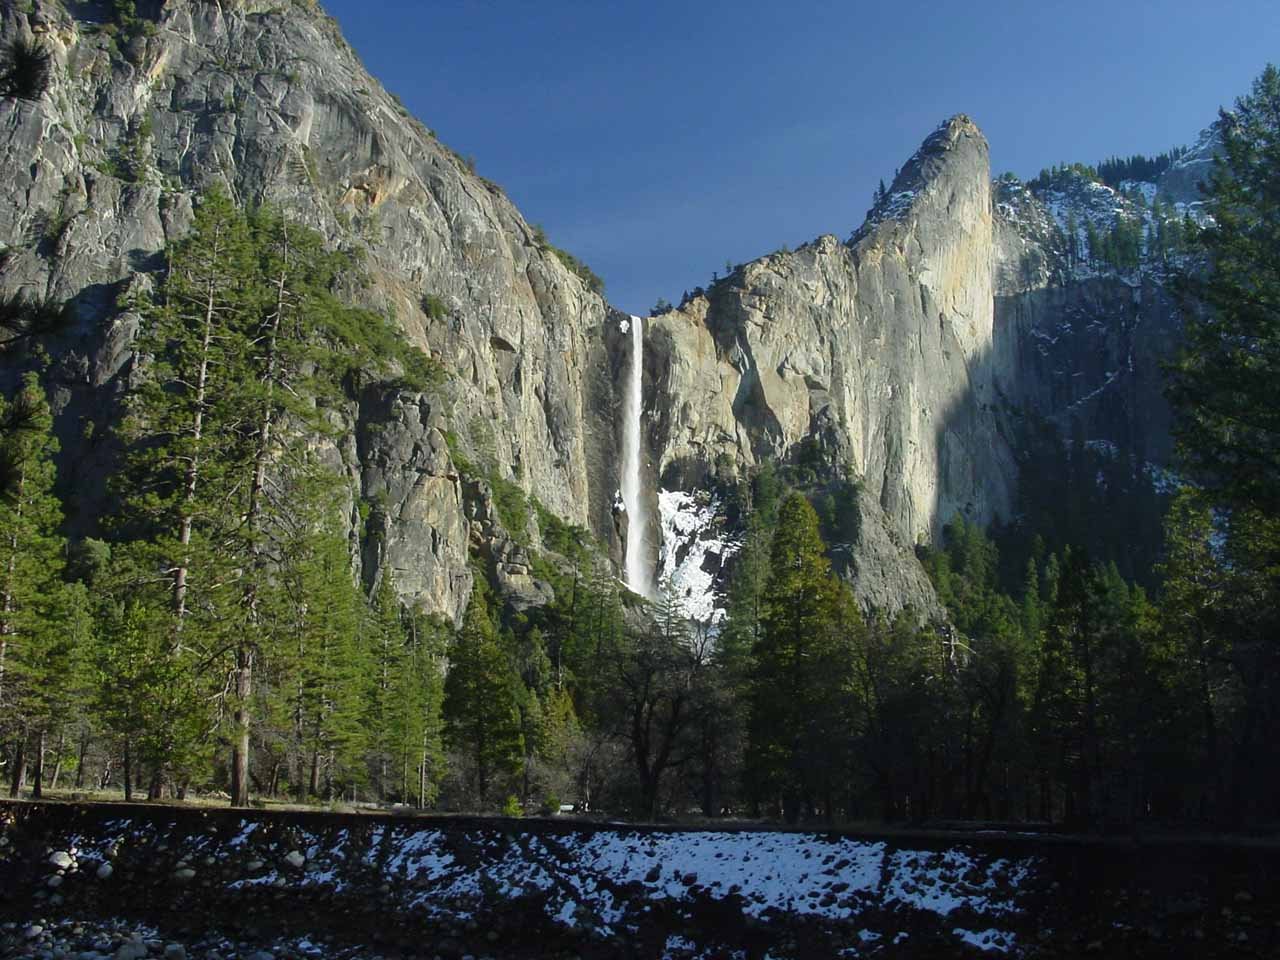 Bridalveil Fall from across the Merced River